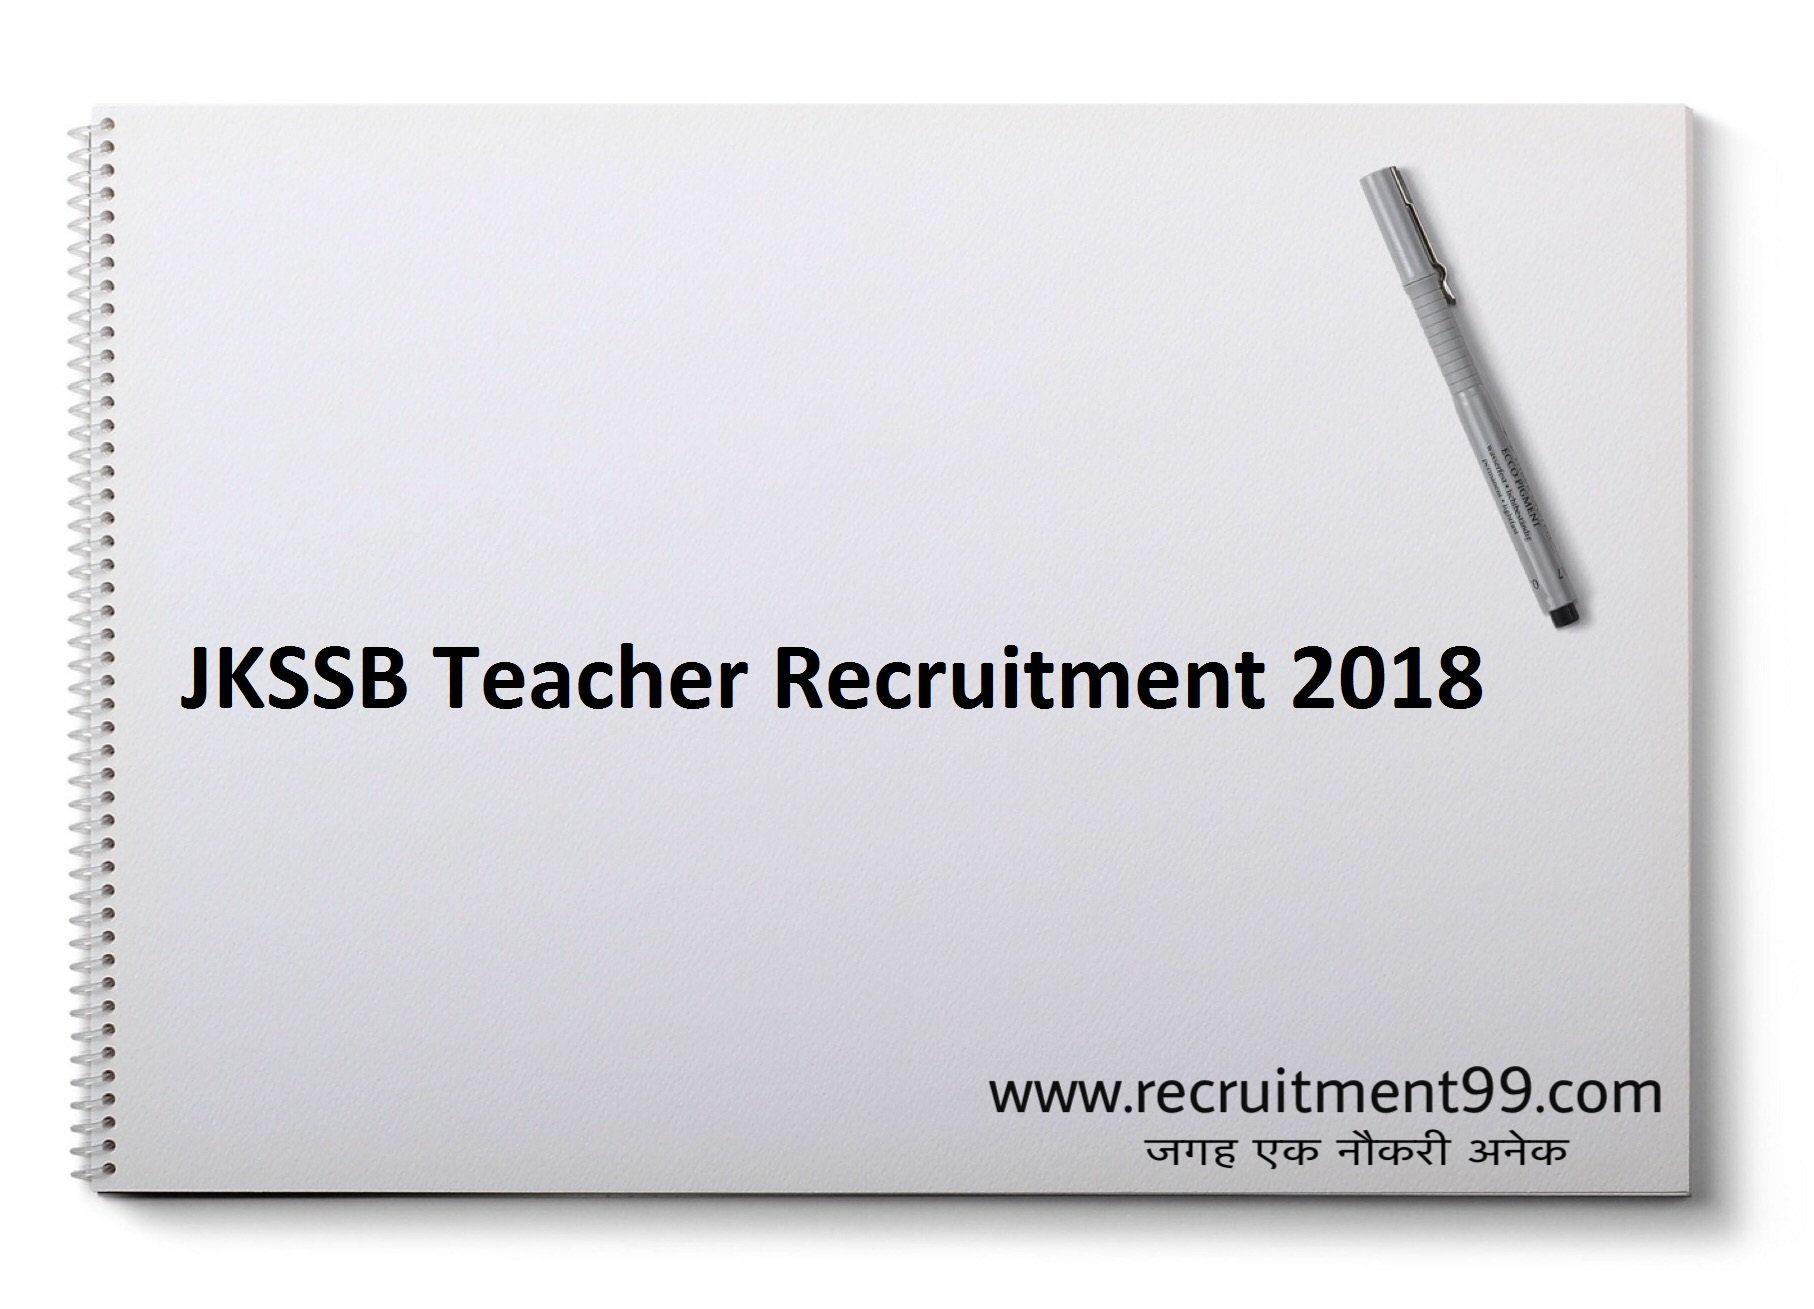 JKSSB General Urdu Science Maths Teacher Recruitment Admit Card & Result 2018